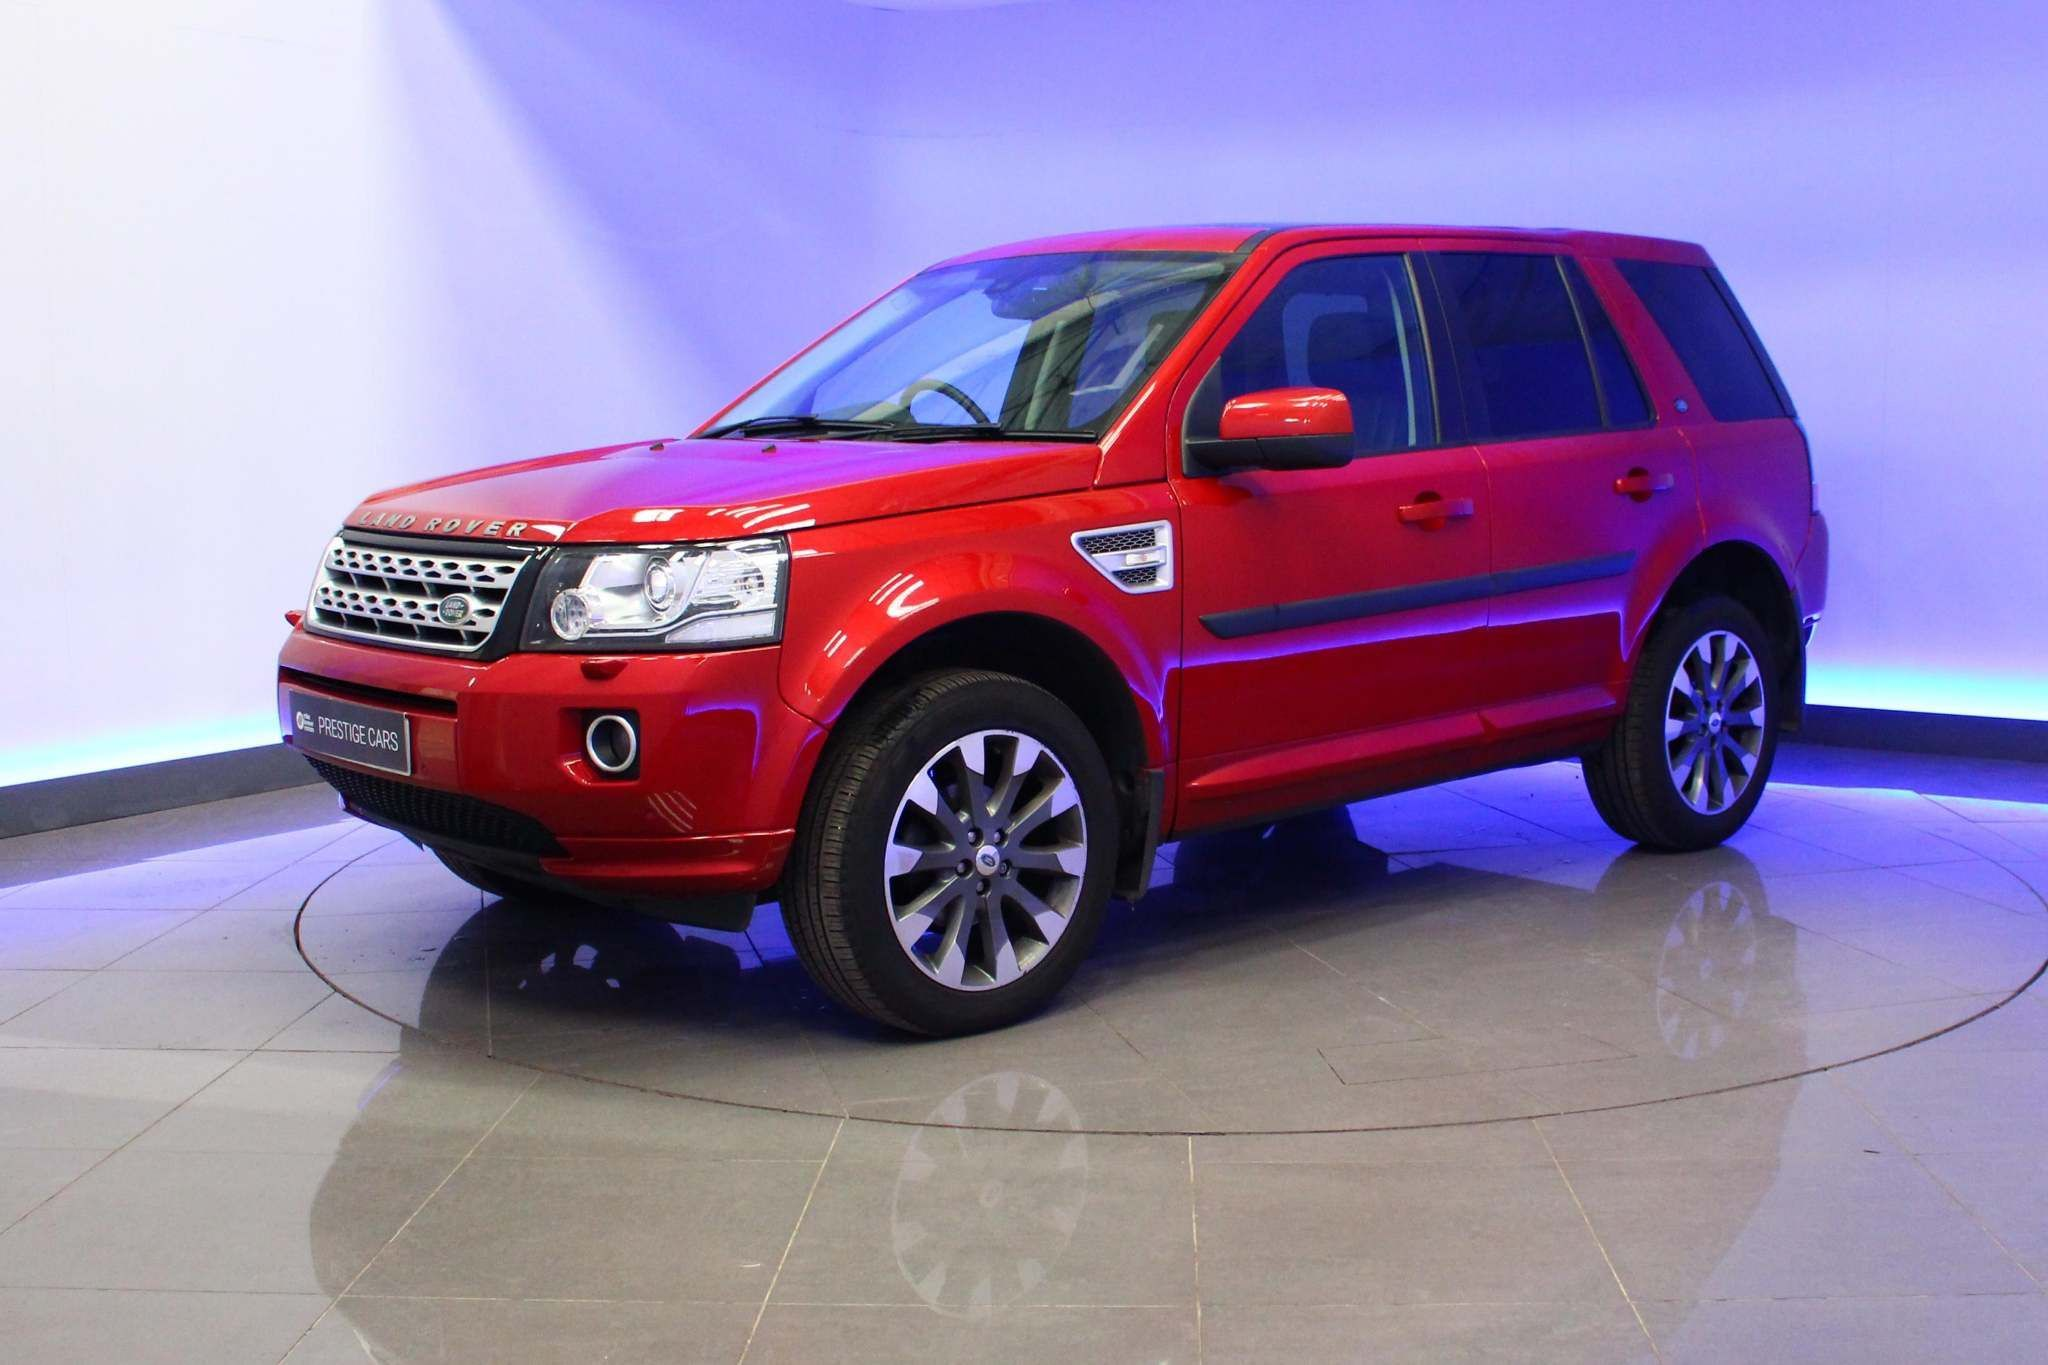 Used  Land Rover Freelander 2 HSE Luxury